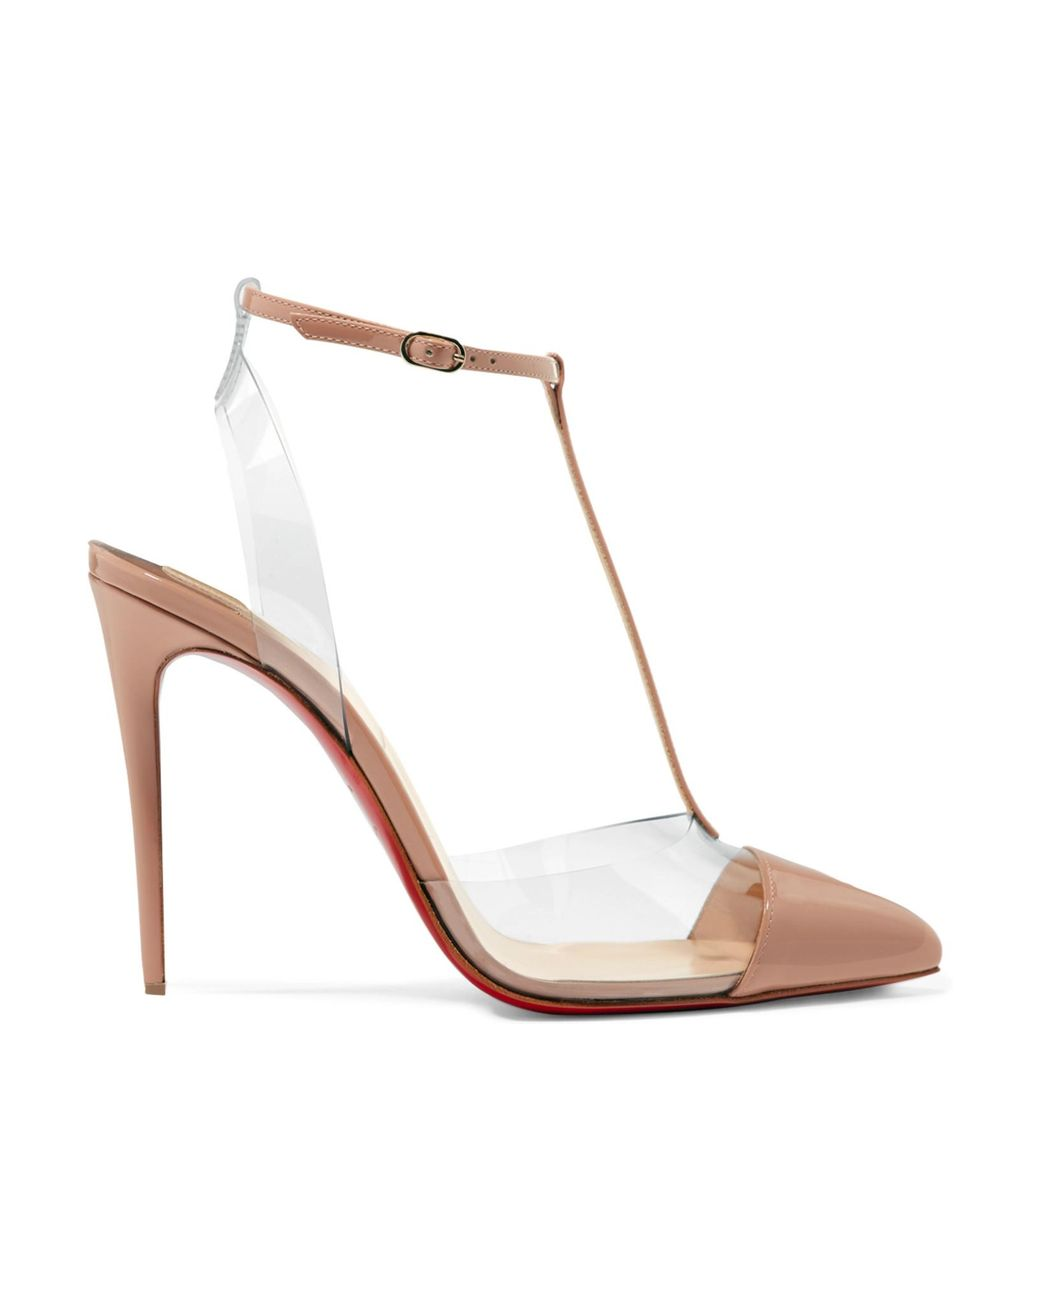 1a8f0754d9 Christian Louboutin Nosy 100 Patent-leather And Pvc Pumps - Lyst